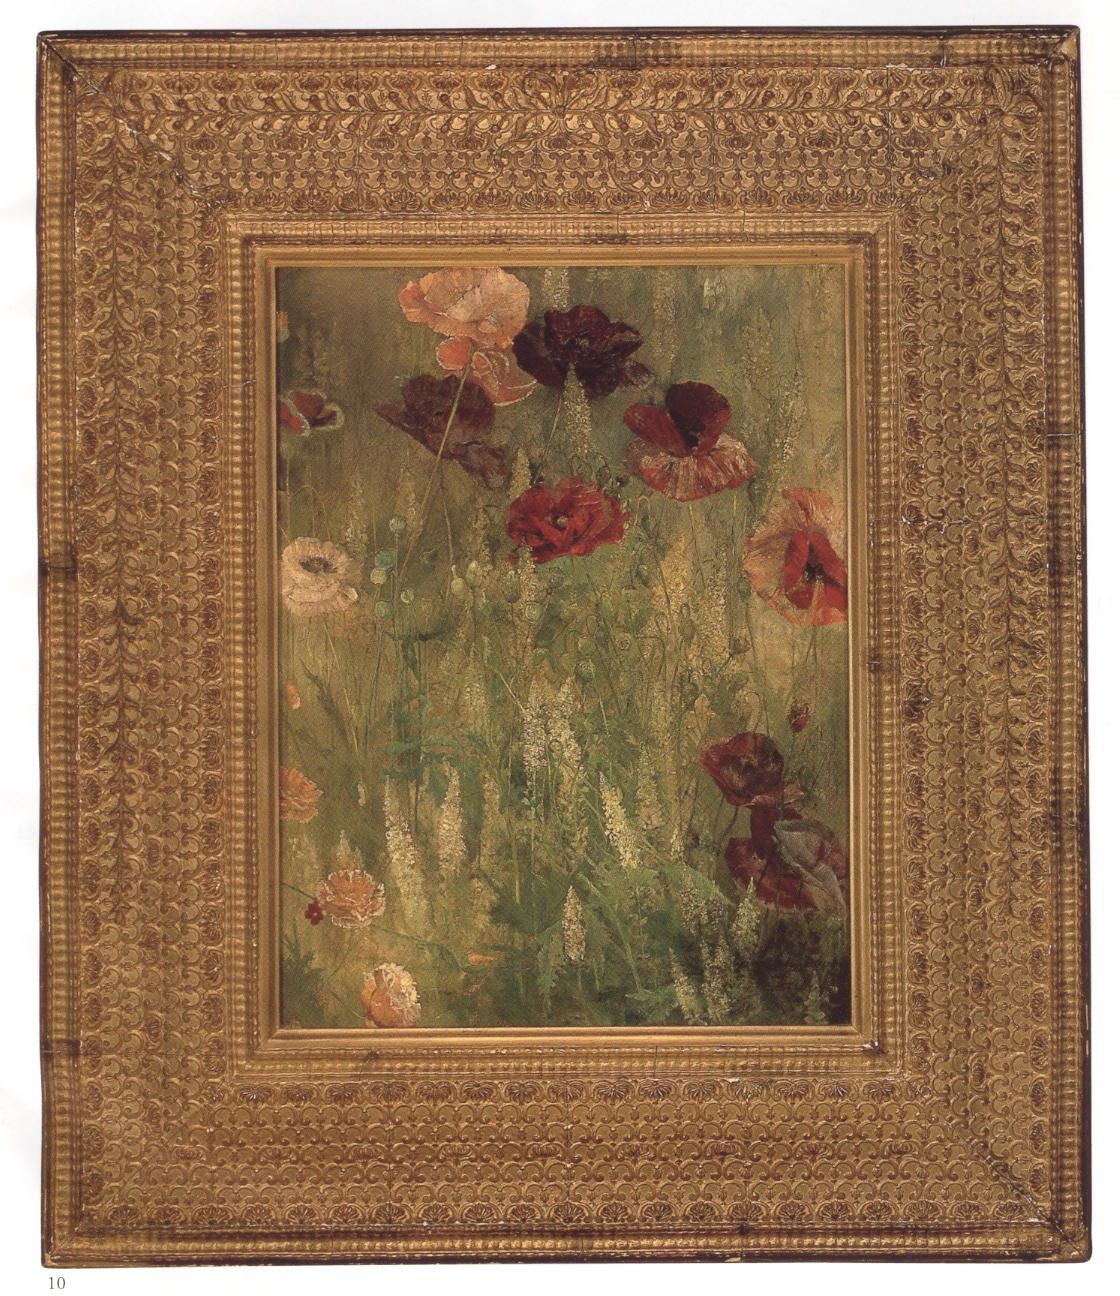 "Maria Oakey Dewing ""Poppies and Italian Mignonette"", 1891 in its original frame designed by Stanford White"